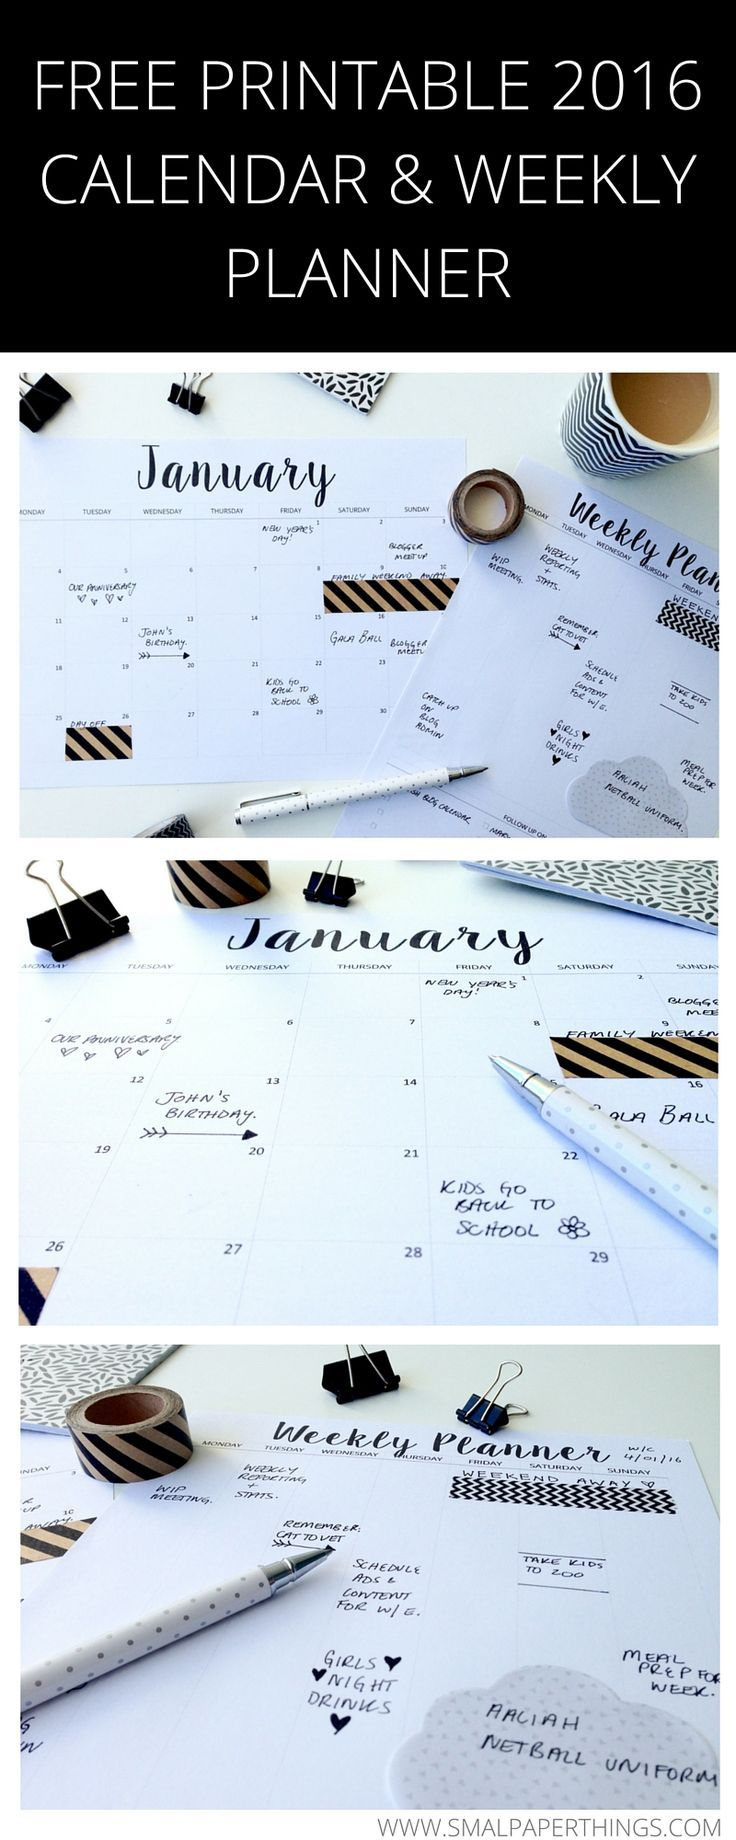 FREE Printable 2016 Calendar. Minimalist/Monochrome style calendar and weekly planner.